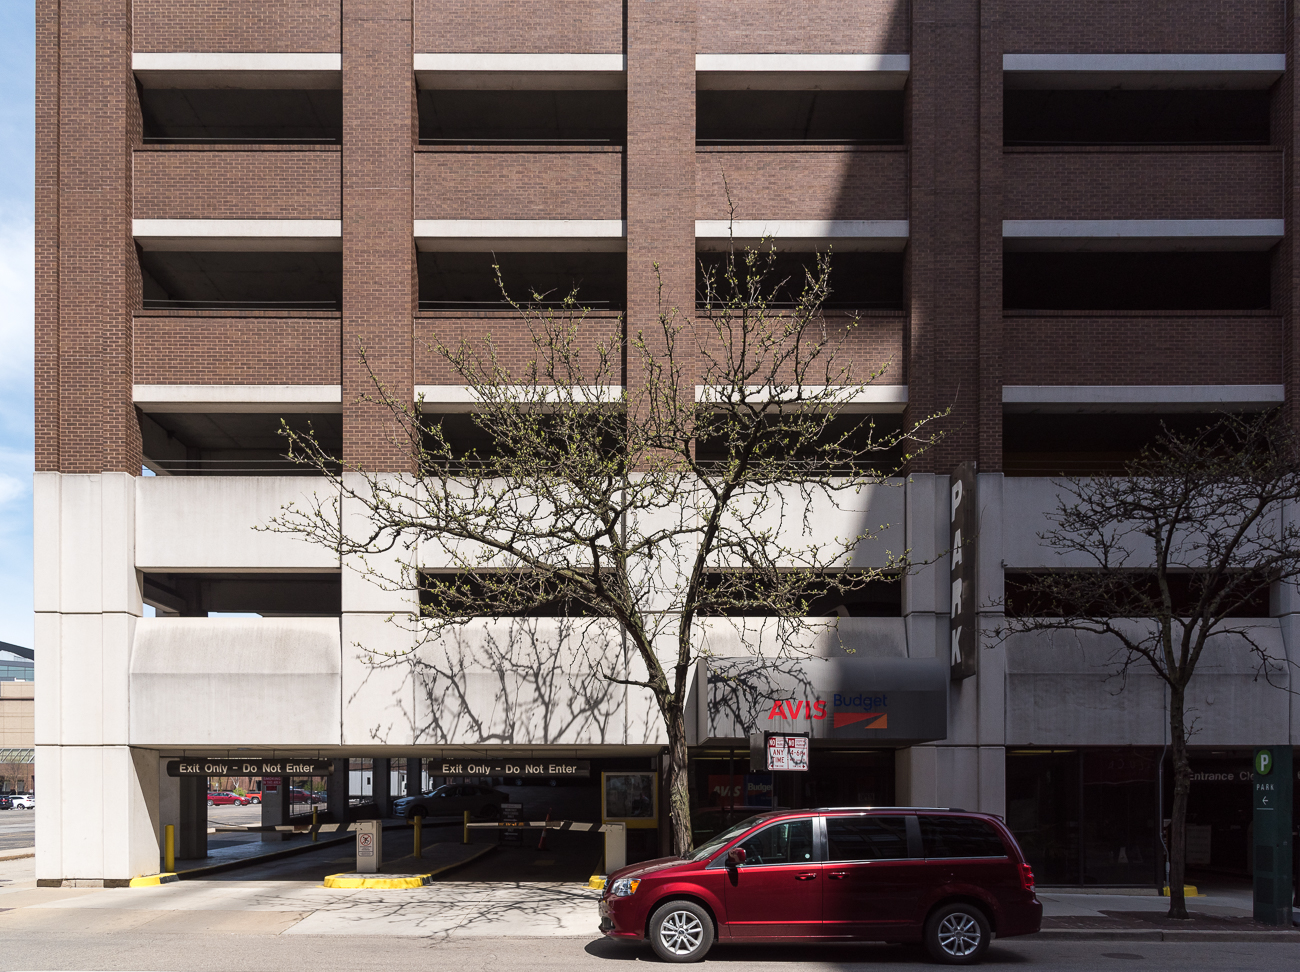 4th Street has a car rental place: Avis Car Rental / ADDRESS: 212 W 4th Street / Image: Phil Armstrong, Cincinnati Refined // Published: 4.23.18